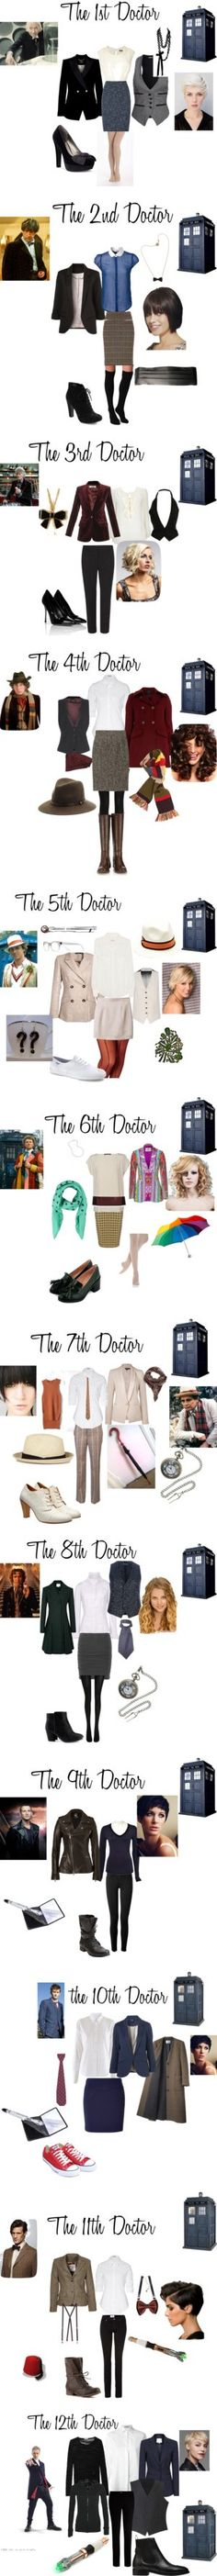 The 12 Doctors by nchavez113 on Polyvore featuring Denham, Ted Baker, Sally Phillips, G by Guess, Phase Eight, Plush, Aubin & Wills, Etro, Seychelles and Wallis